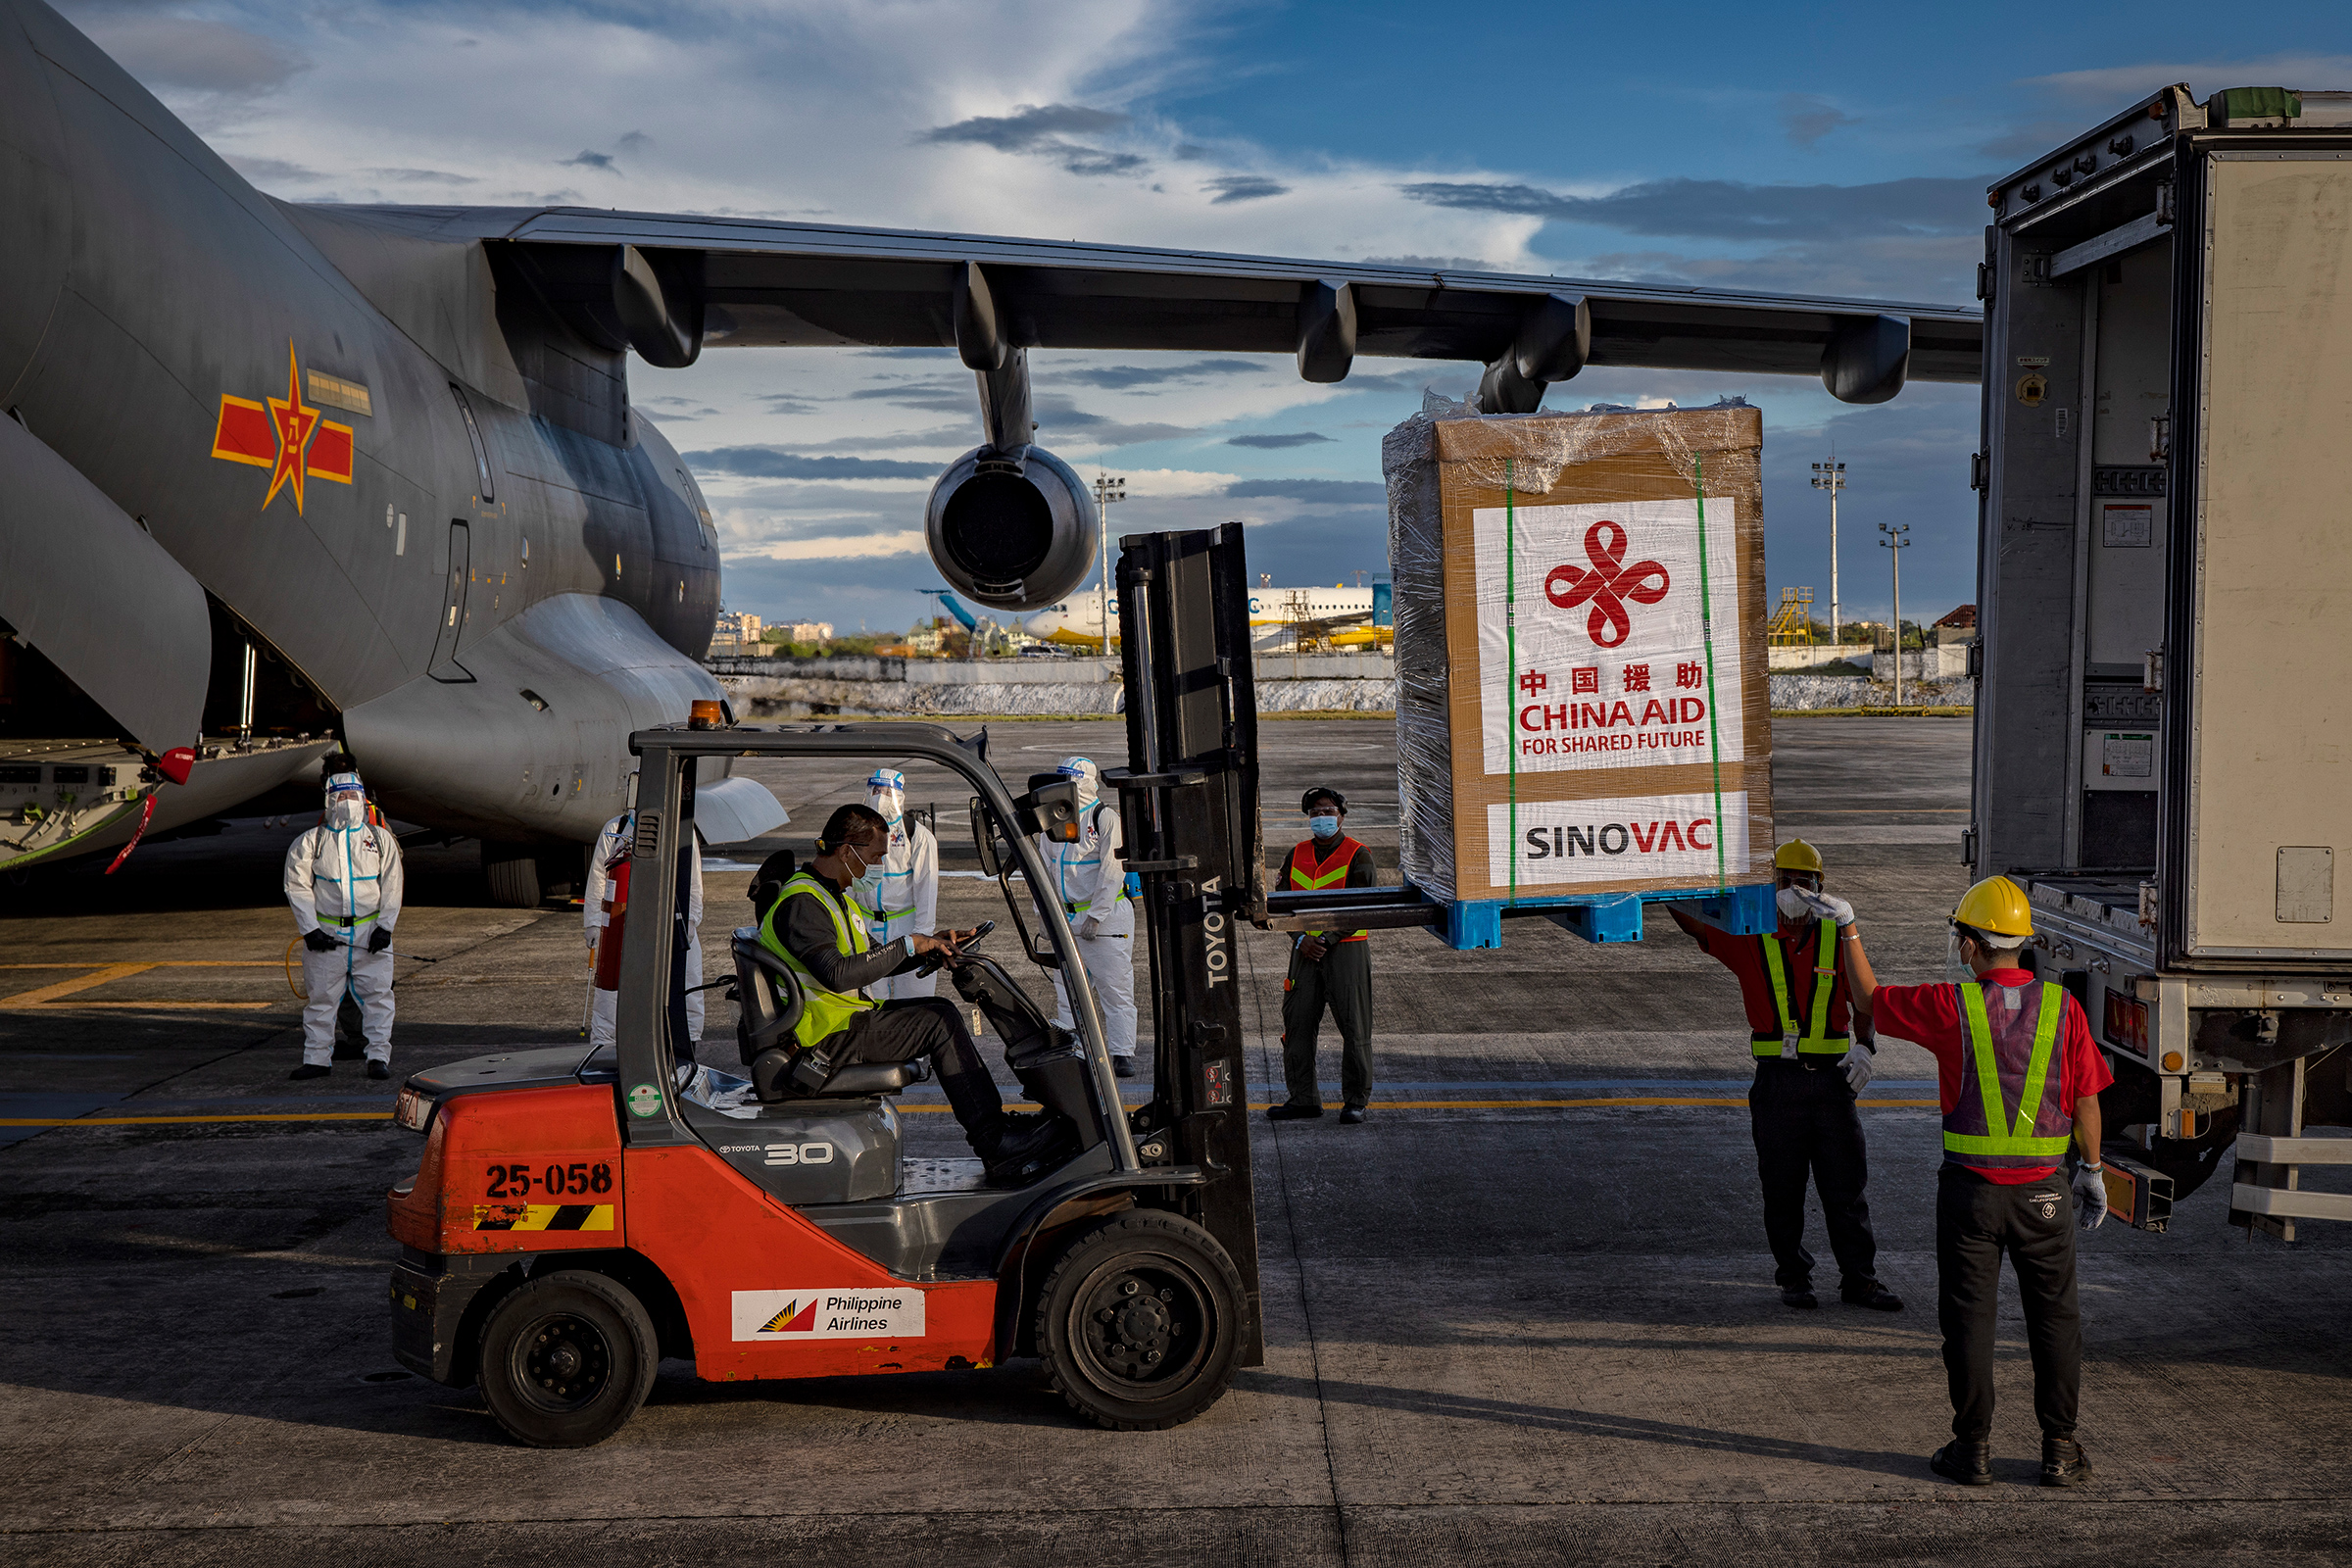 A crate containing Sinovac Biotech COVID-19 vaccines is loaded into a truck upon arrival at Ninoy Aquino International Airport in Manila on Feb. 28. Duterte witnessed the arrival of 600,000 doses donated by the Chinese government.